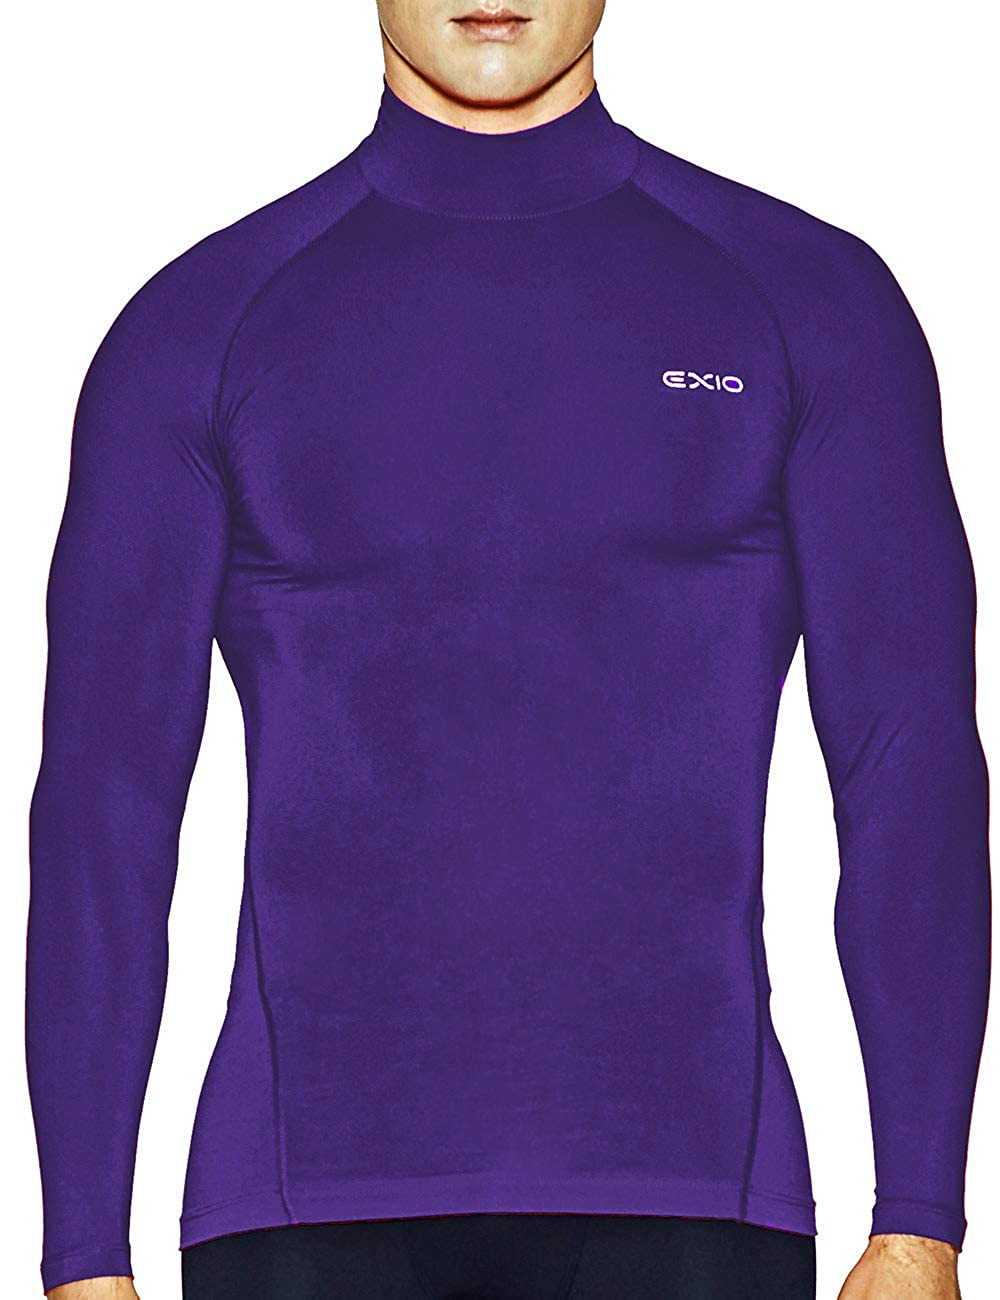 EXIO Mens Mock Compression Baselayer Top Cool Dry Long-Sleeve Shirts EX-T02